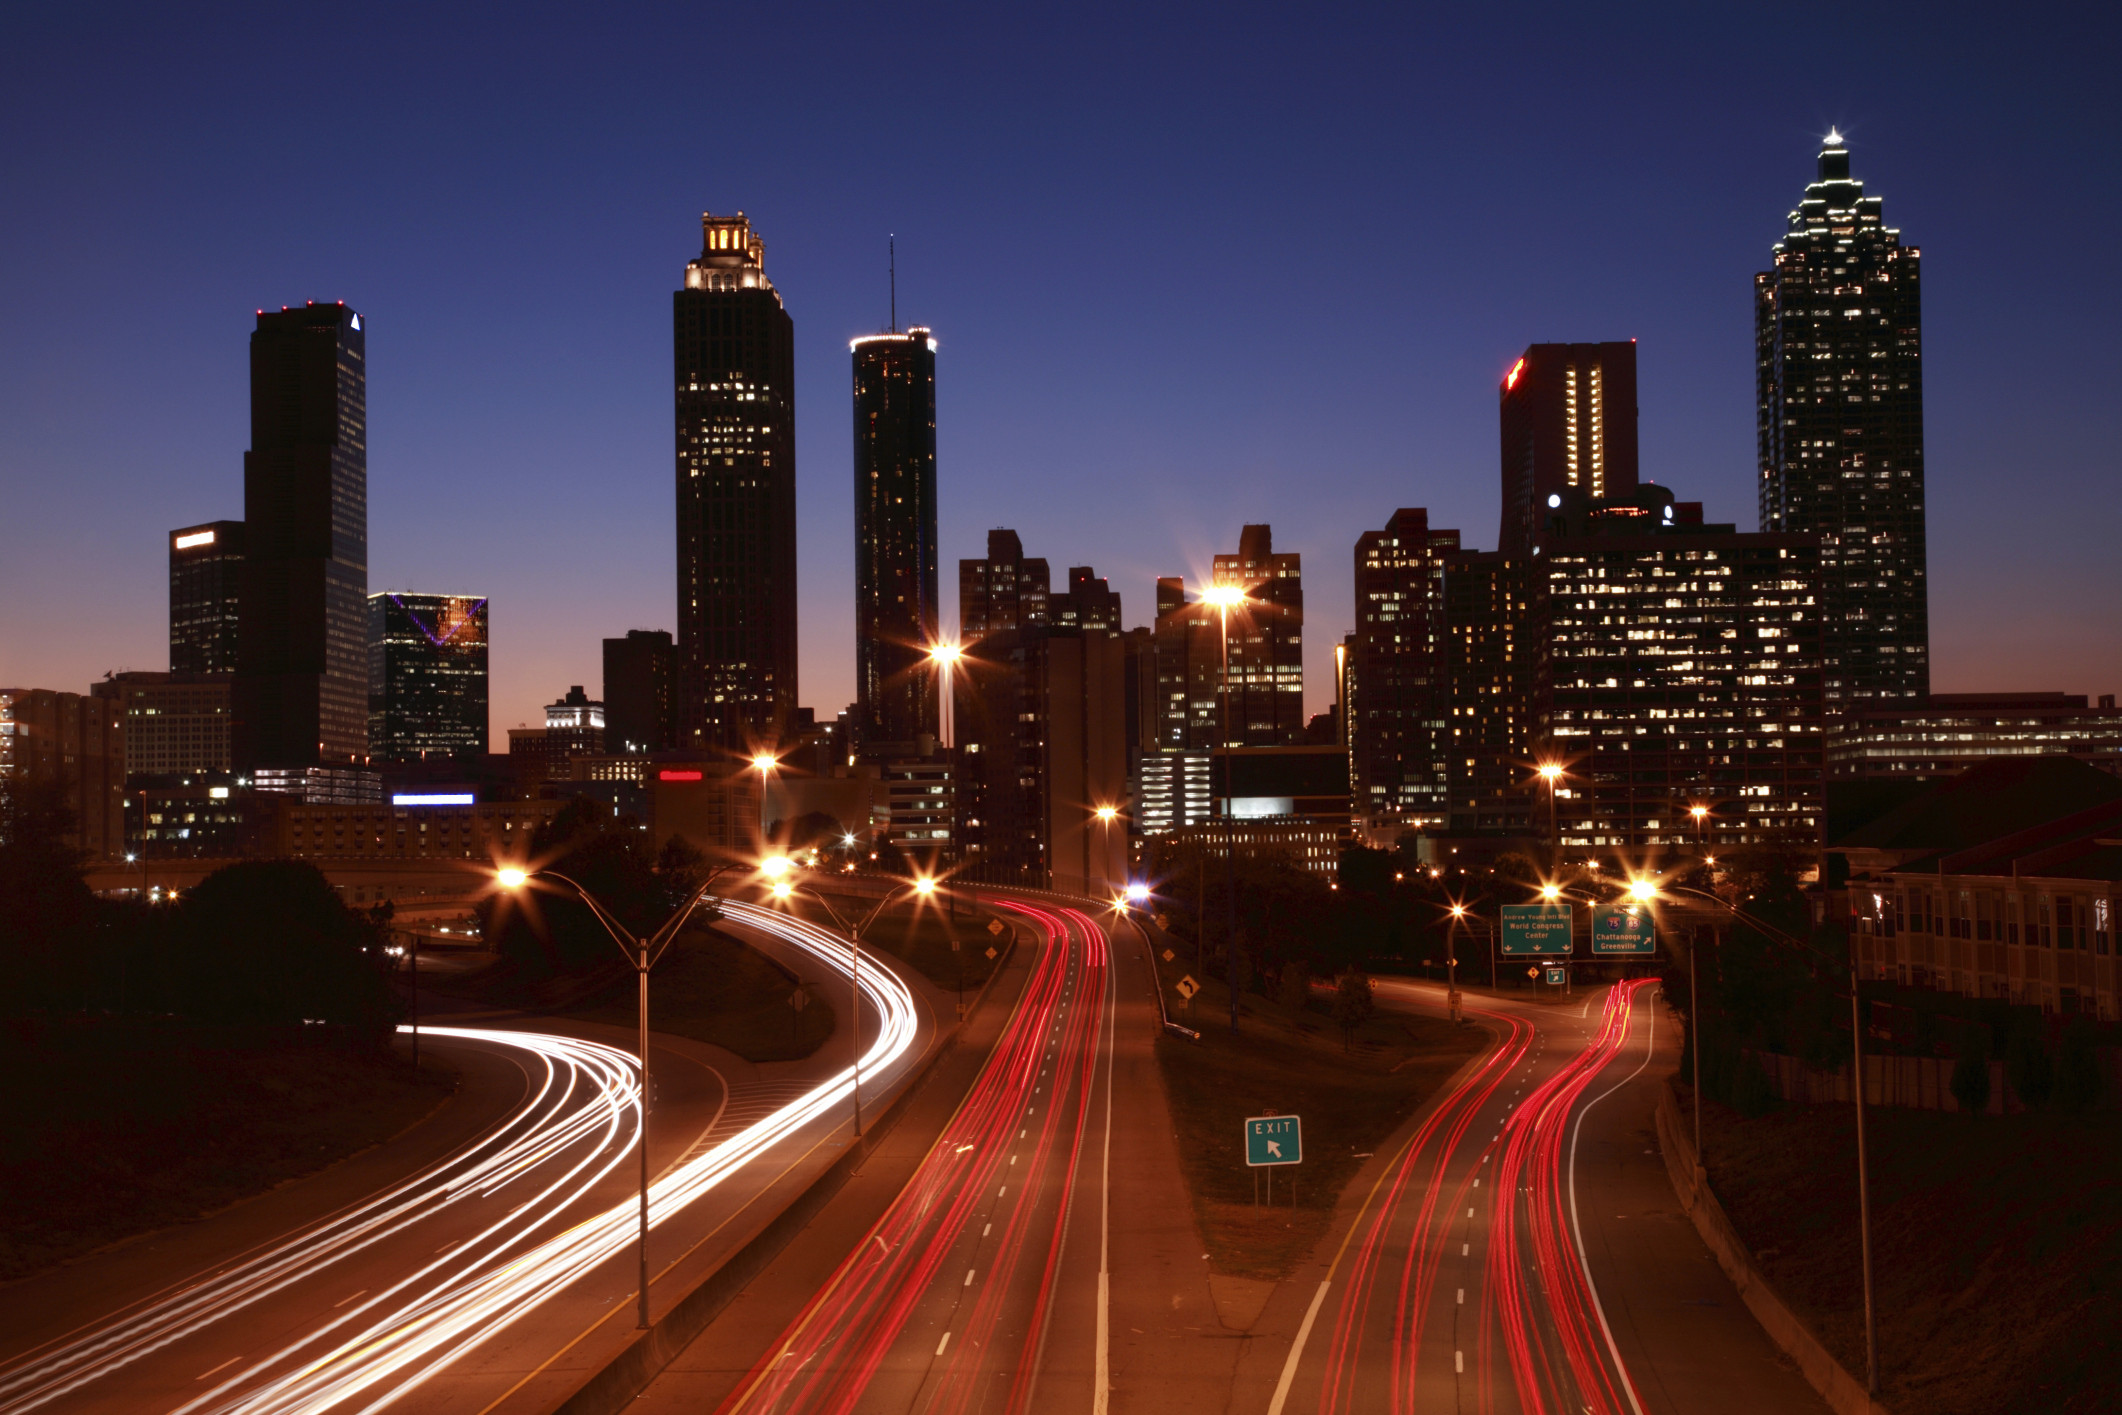 2122x1415 Park Centennial Atlanta Night Wallpaper 5 - 2122 X 1415